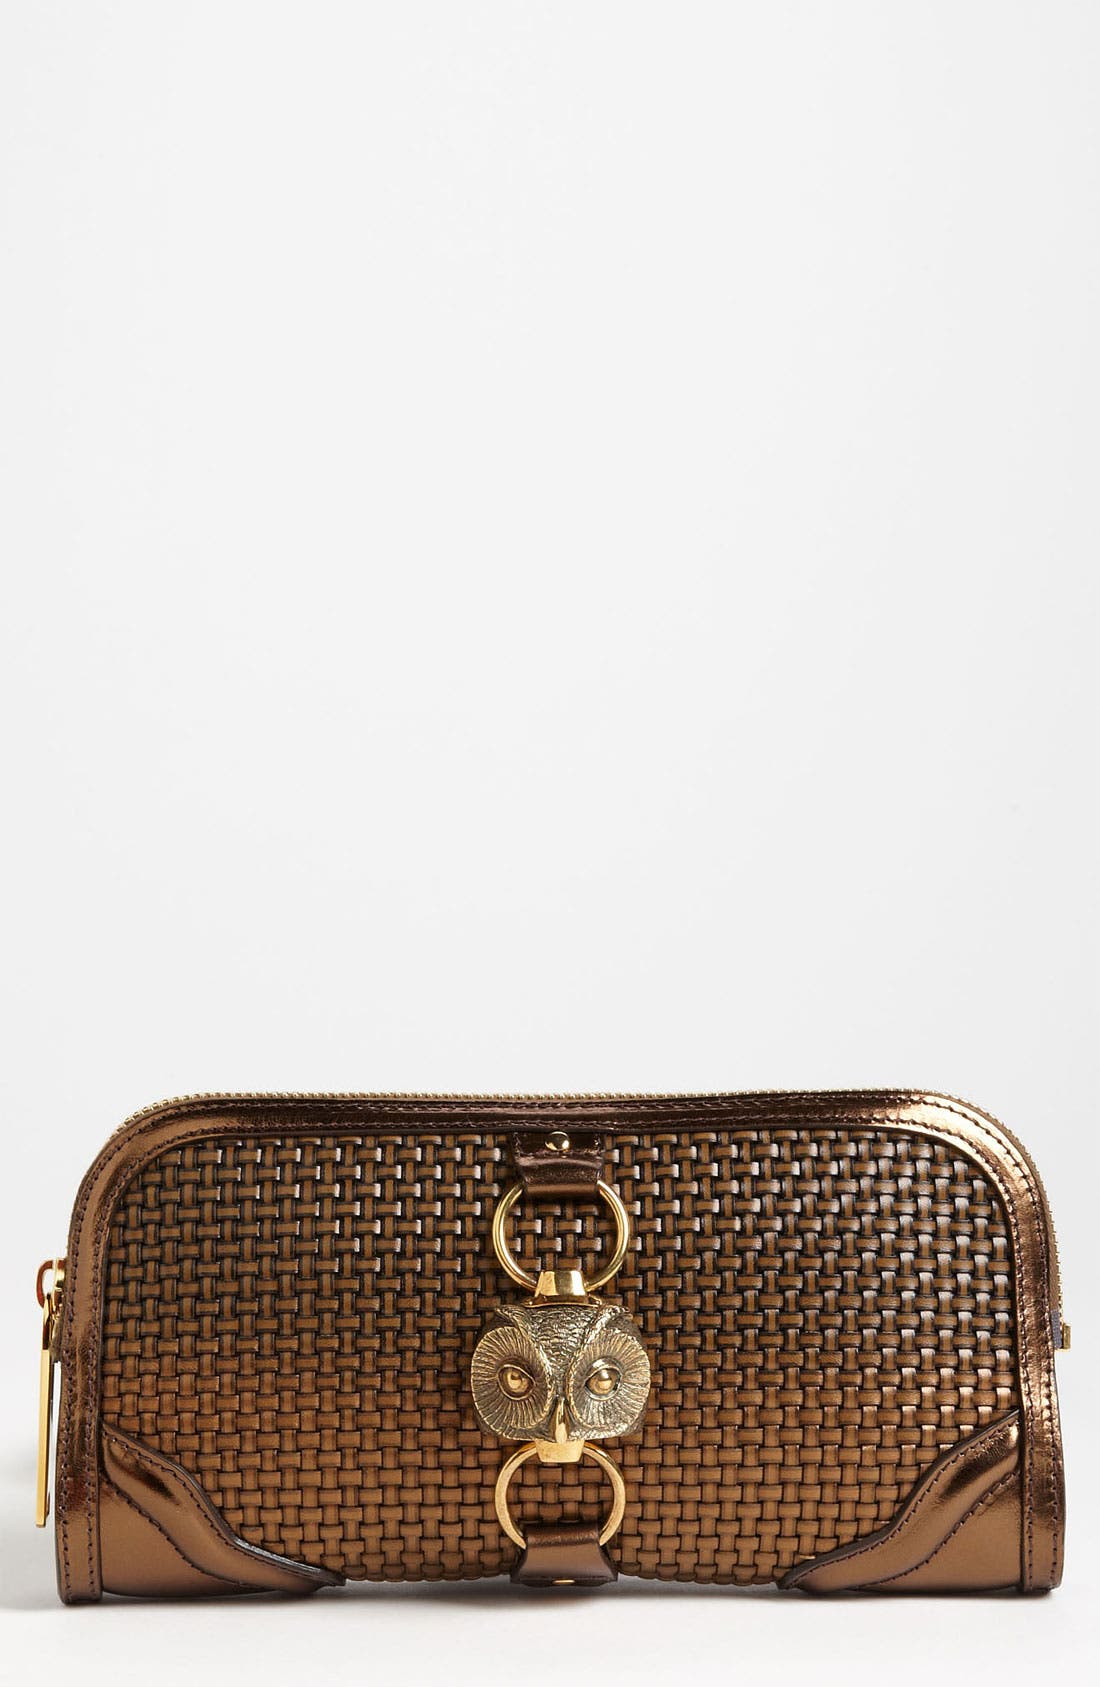 Main Image - Burberry 'Metallic Woven' Leather Clutch